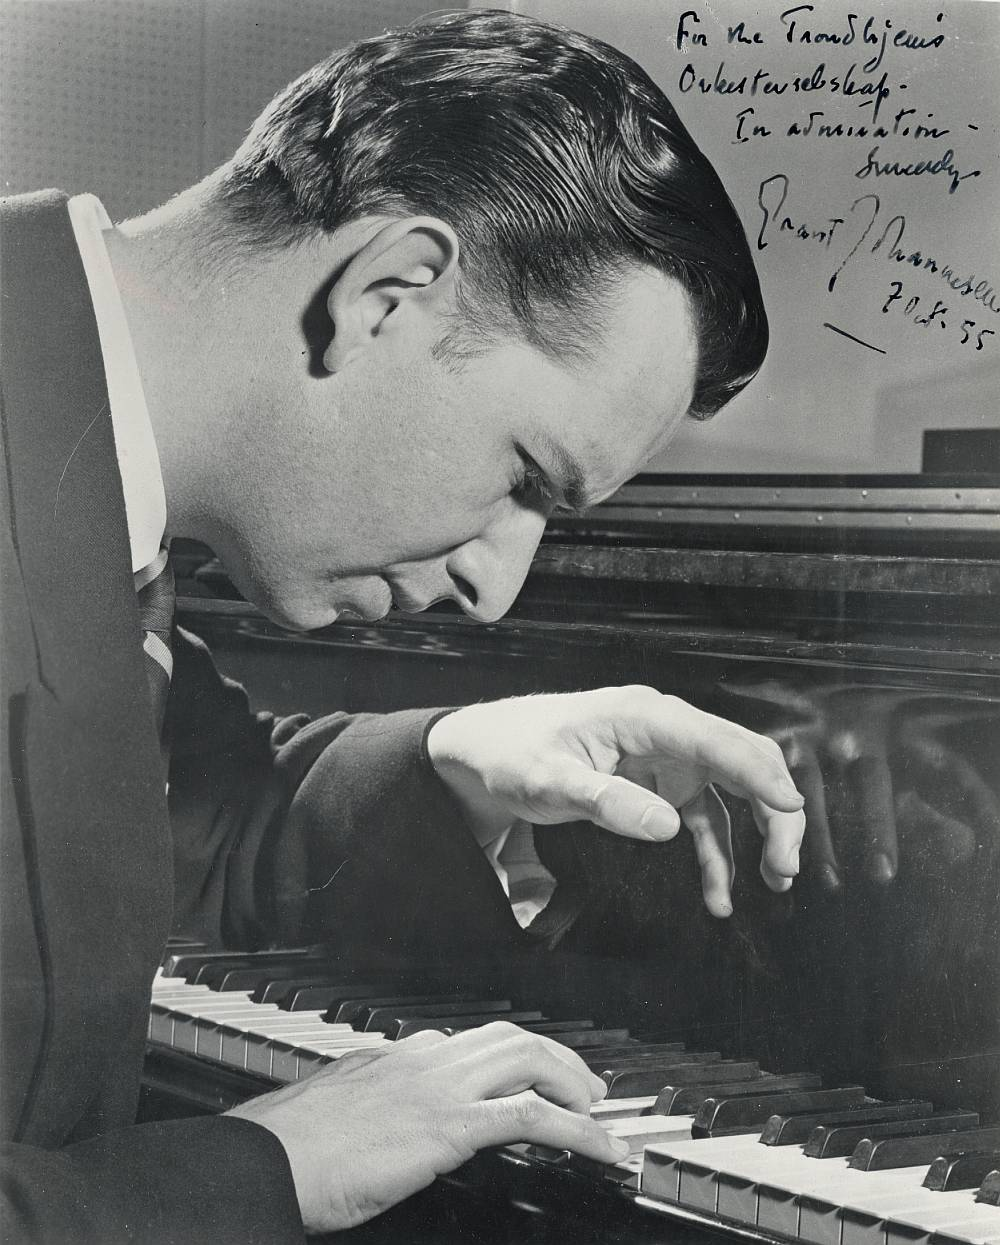 Grant Johannesen, 1955, avec la dédicace: For the Trondhjems orkesterselskap - in admiration - Sincerely, Grant Johannesen, 1955. Ref.: wikipedia http://en.wikipedia.org/wiki/File:Grant_Johannesen_(1921_-_2005).jpg Olaf T. Ranum, Trondheim byarkiv, The Municipal Archives of Trondheim Arkivreferanse / Archive reference: TorH45 - F9469 https://www.flickr.com/photos/29160242@N08/8200071100